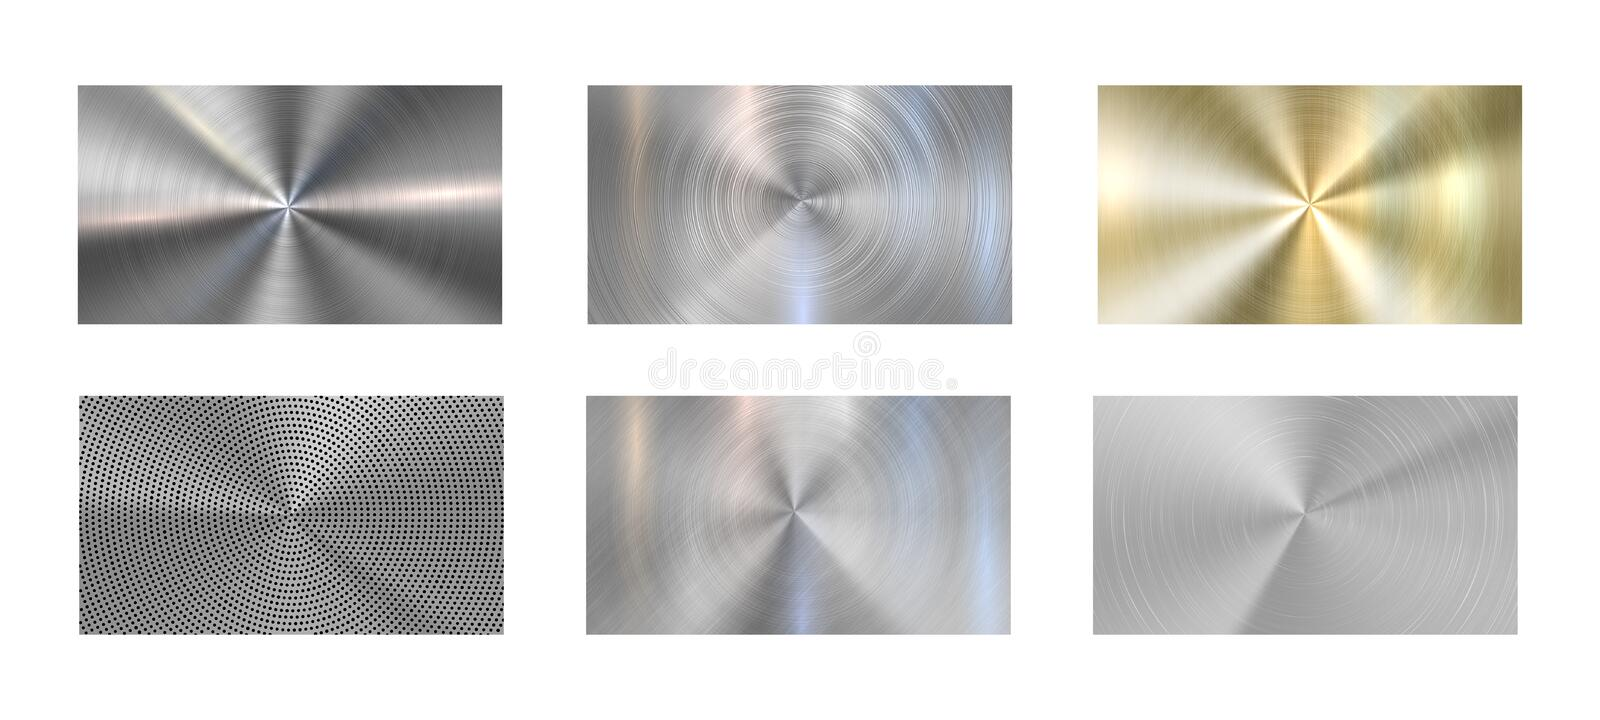 Circular metal texture. Radial brushed metals, grey steel and metallic chrome textures realistic vector background set stock illustration